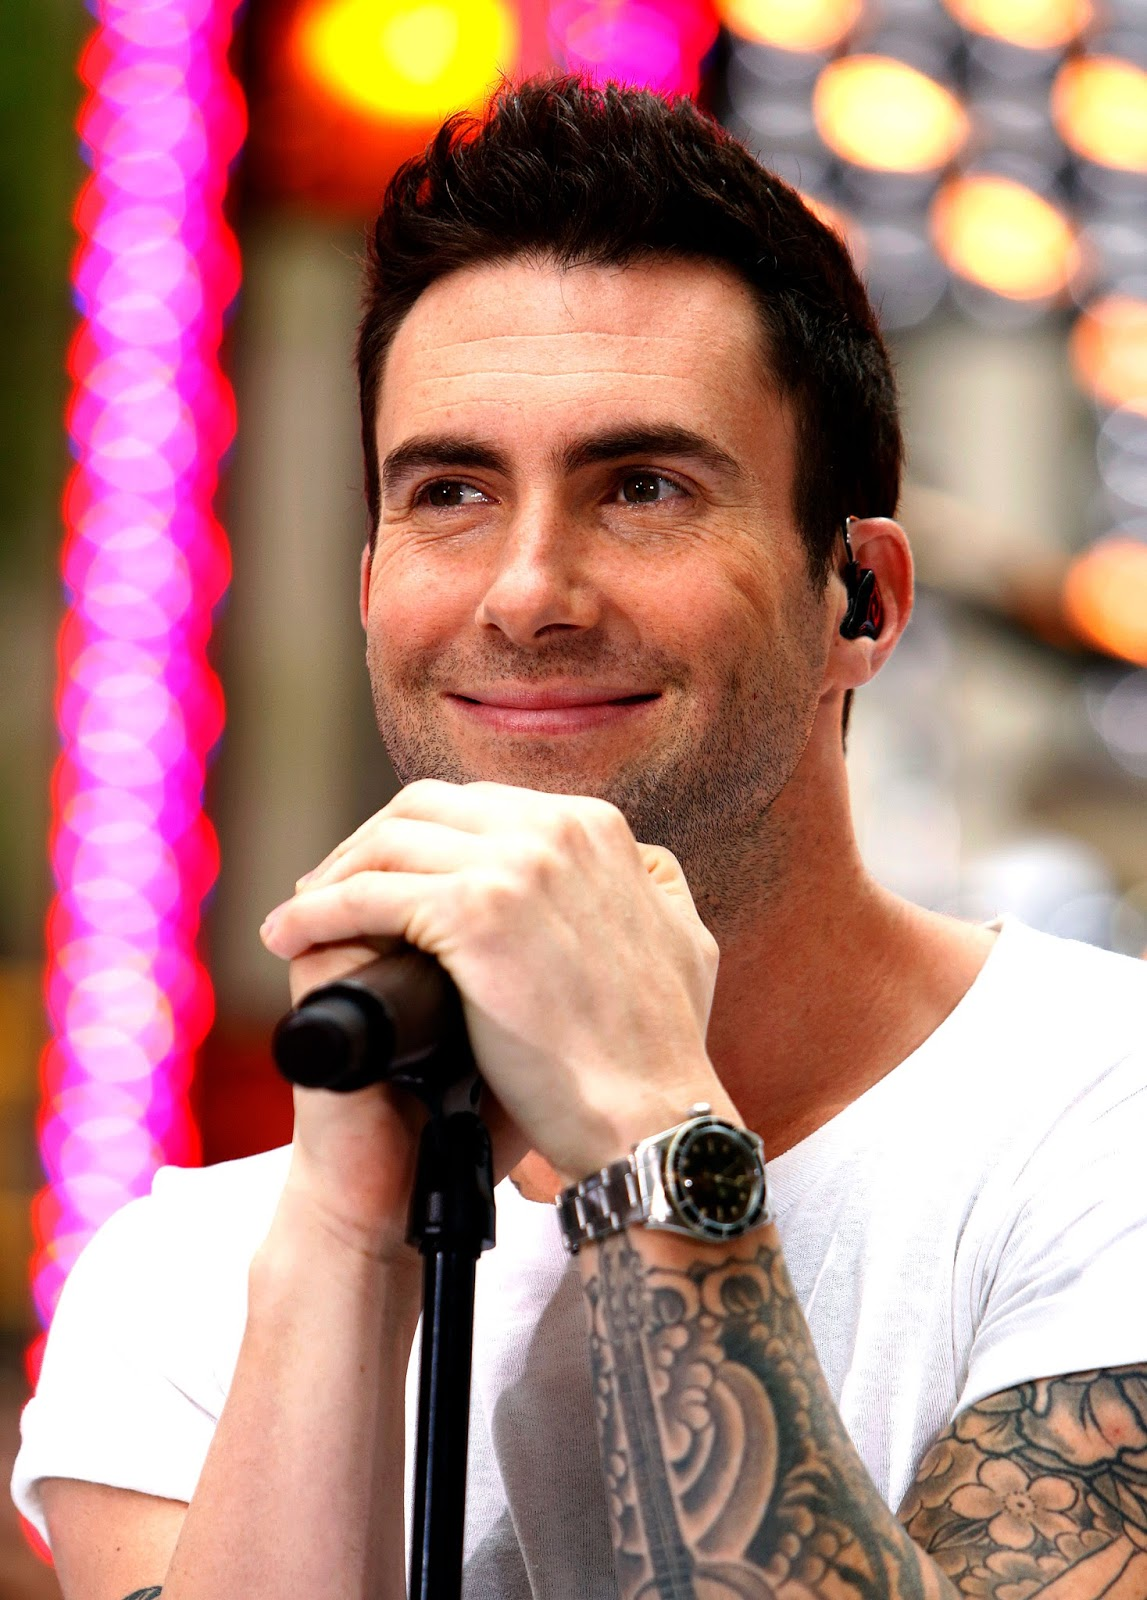 adam-levine-rolex-chicago-watches-geneva-seal-5.jpg